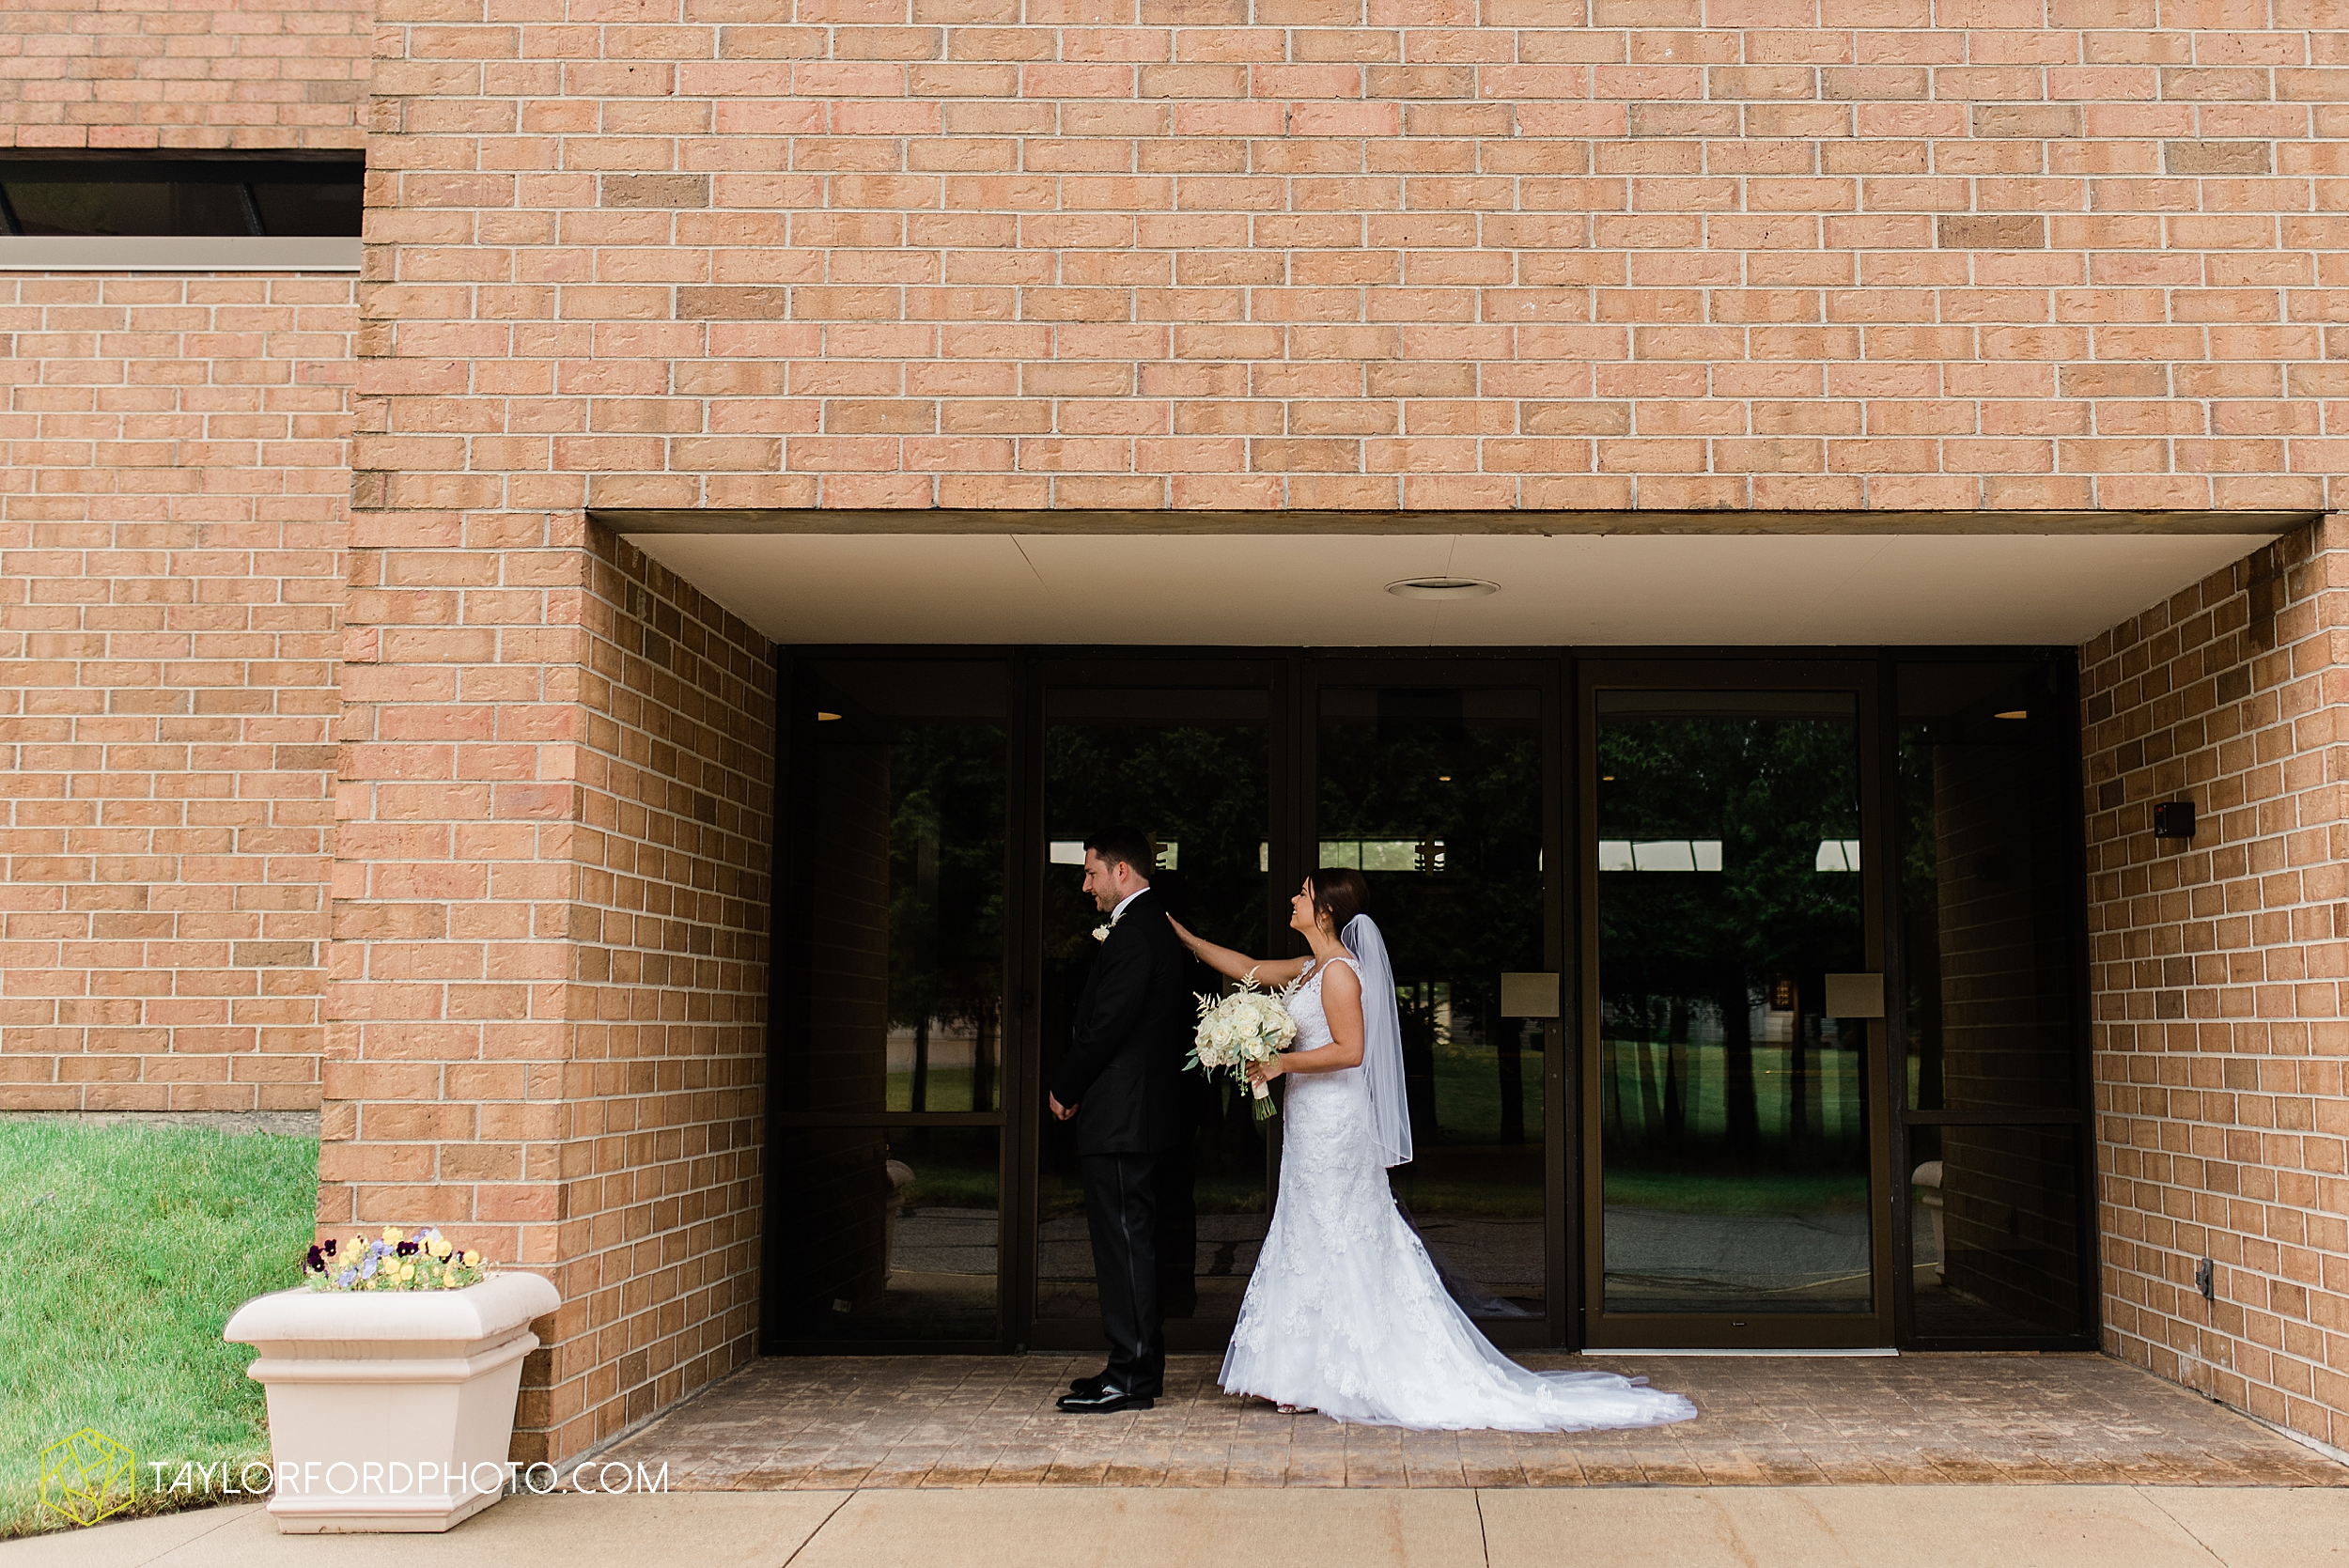 sullivan-st-francis-university-performing-arts-center-usf-saint-charles-borromeo-catholic-church-downtown-fort-wayne-indiana-wedding-photography-taylor-ford-hirschy-photographer_3217.jpg